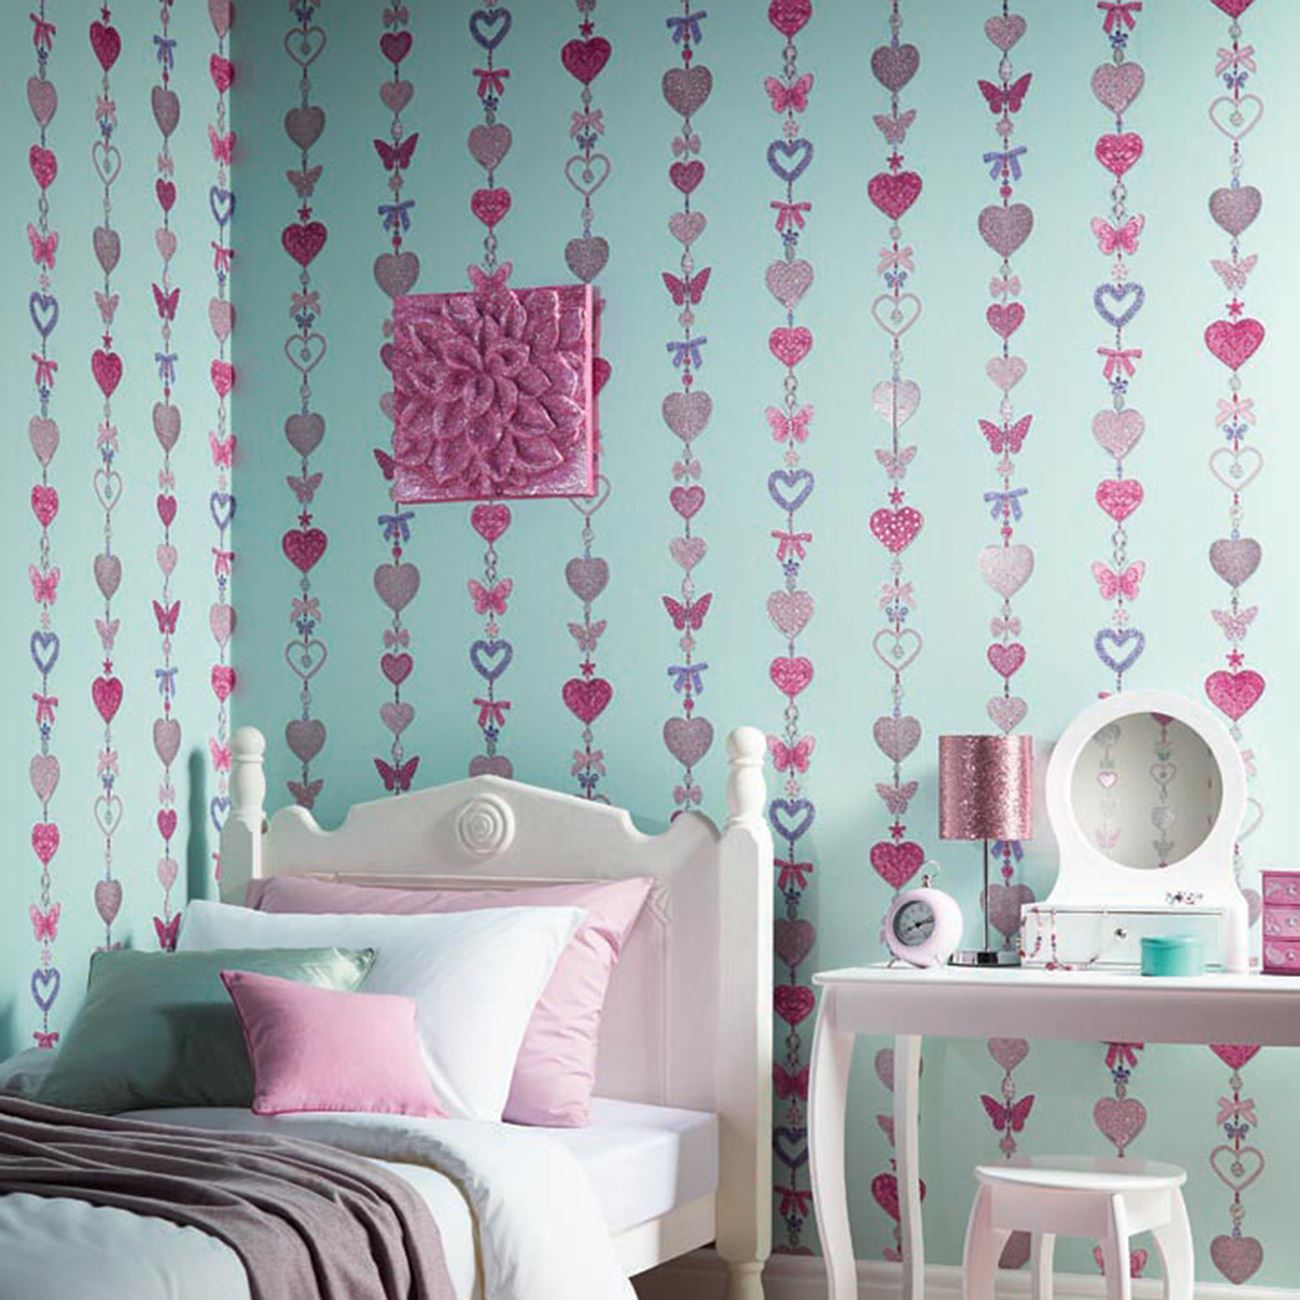 arthouse paillet papier peint enfants chambre coucher filles licorne sir ne ebay. Black Bedroom Furniture Sets. Home Design Ideas